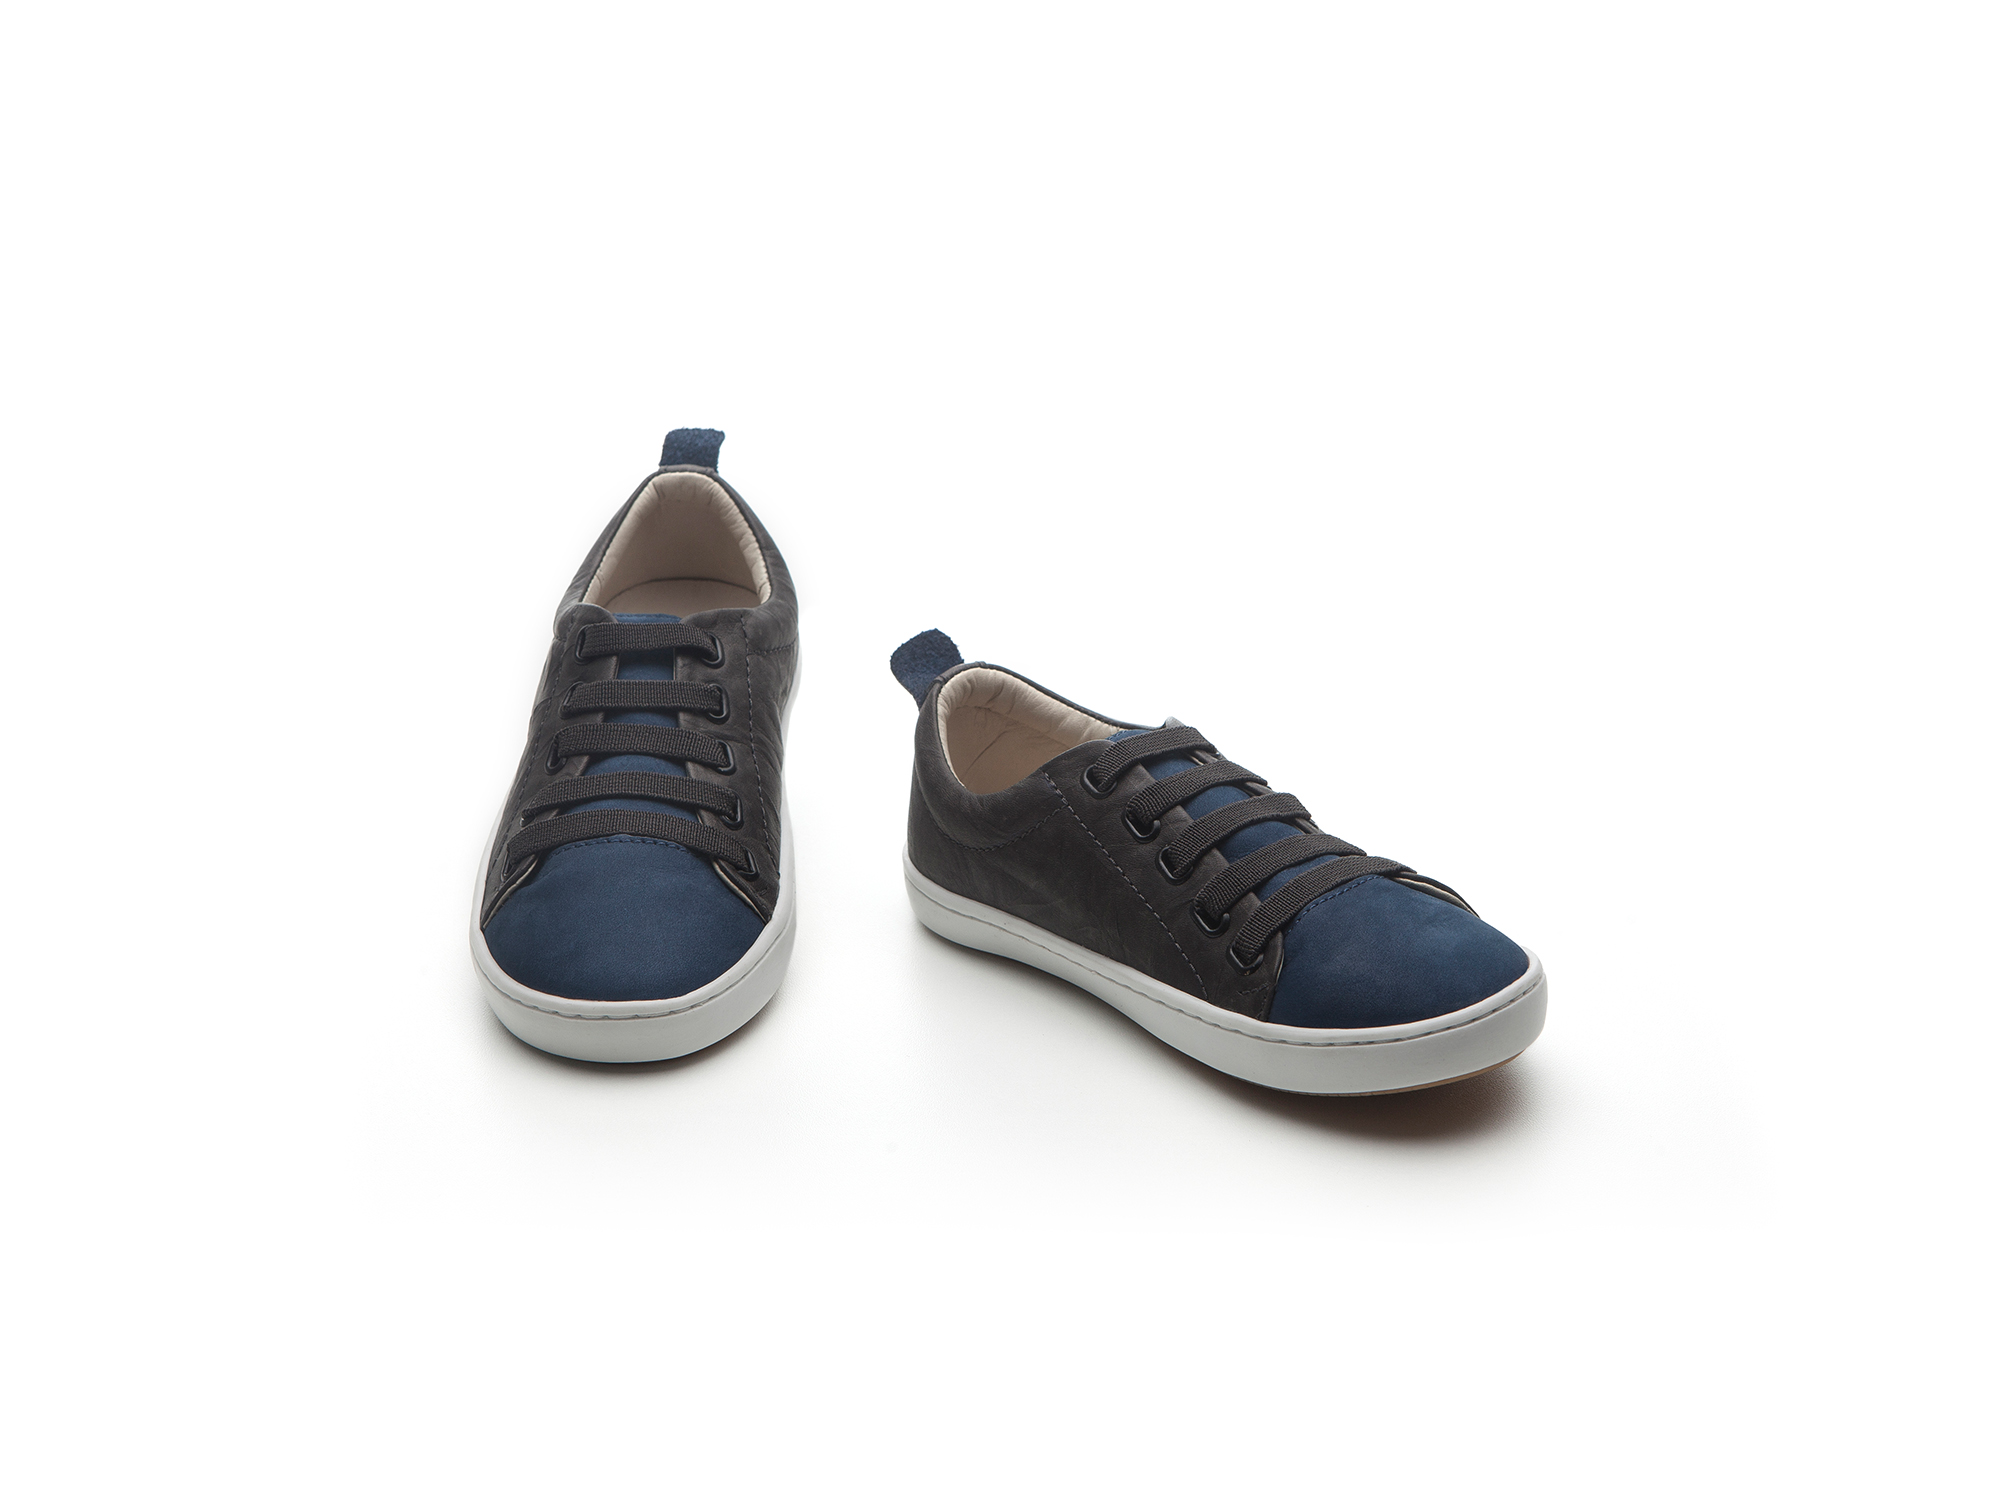 Tênis Ladder Black Crush/ Indigo Blue Nob. Junior 4 à 8 anos - 1